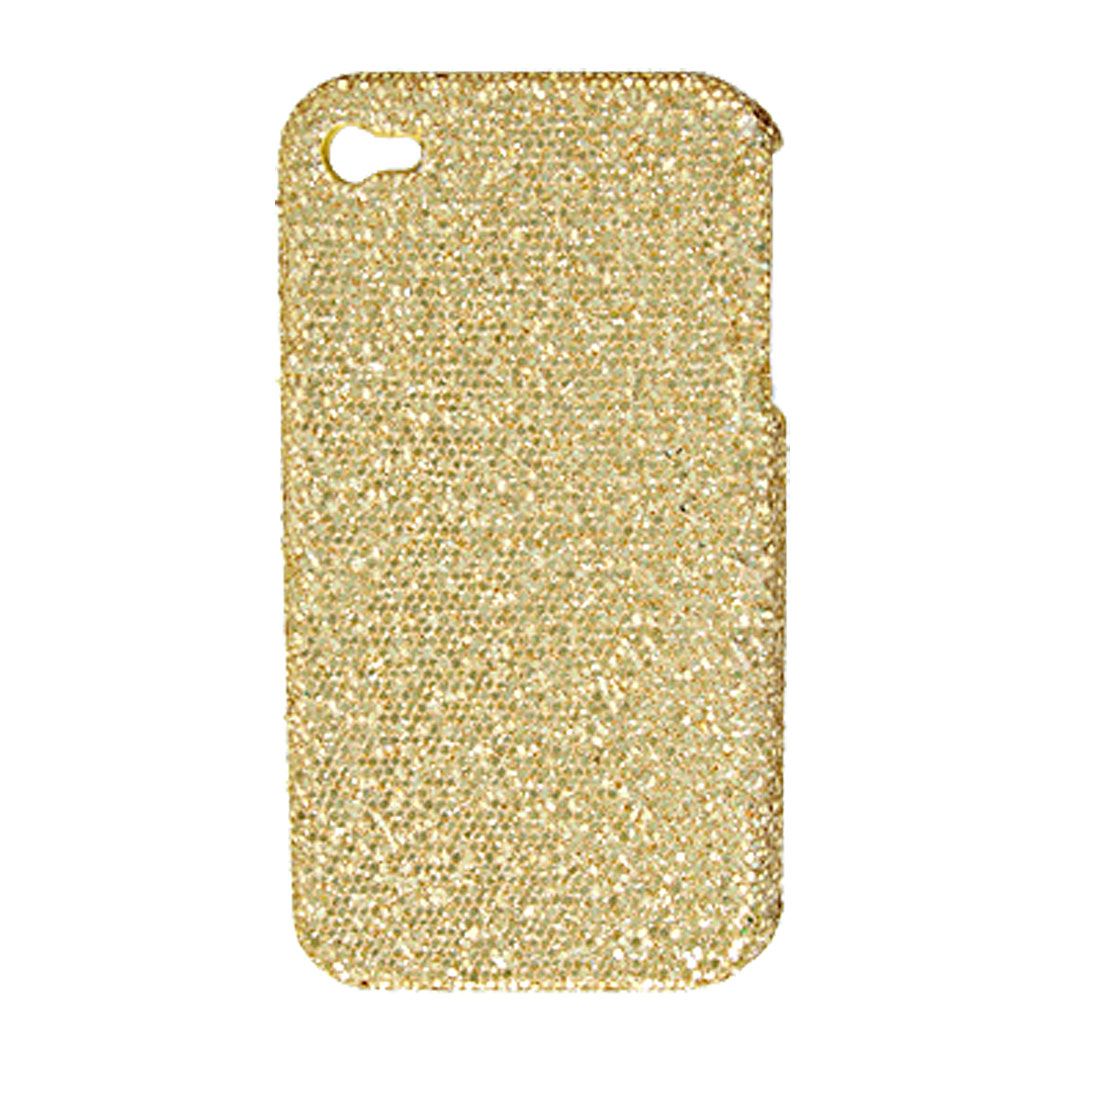 Glittery Paillette Yellow Plastic Cover for iPhone 4